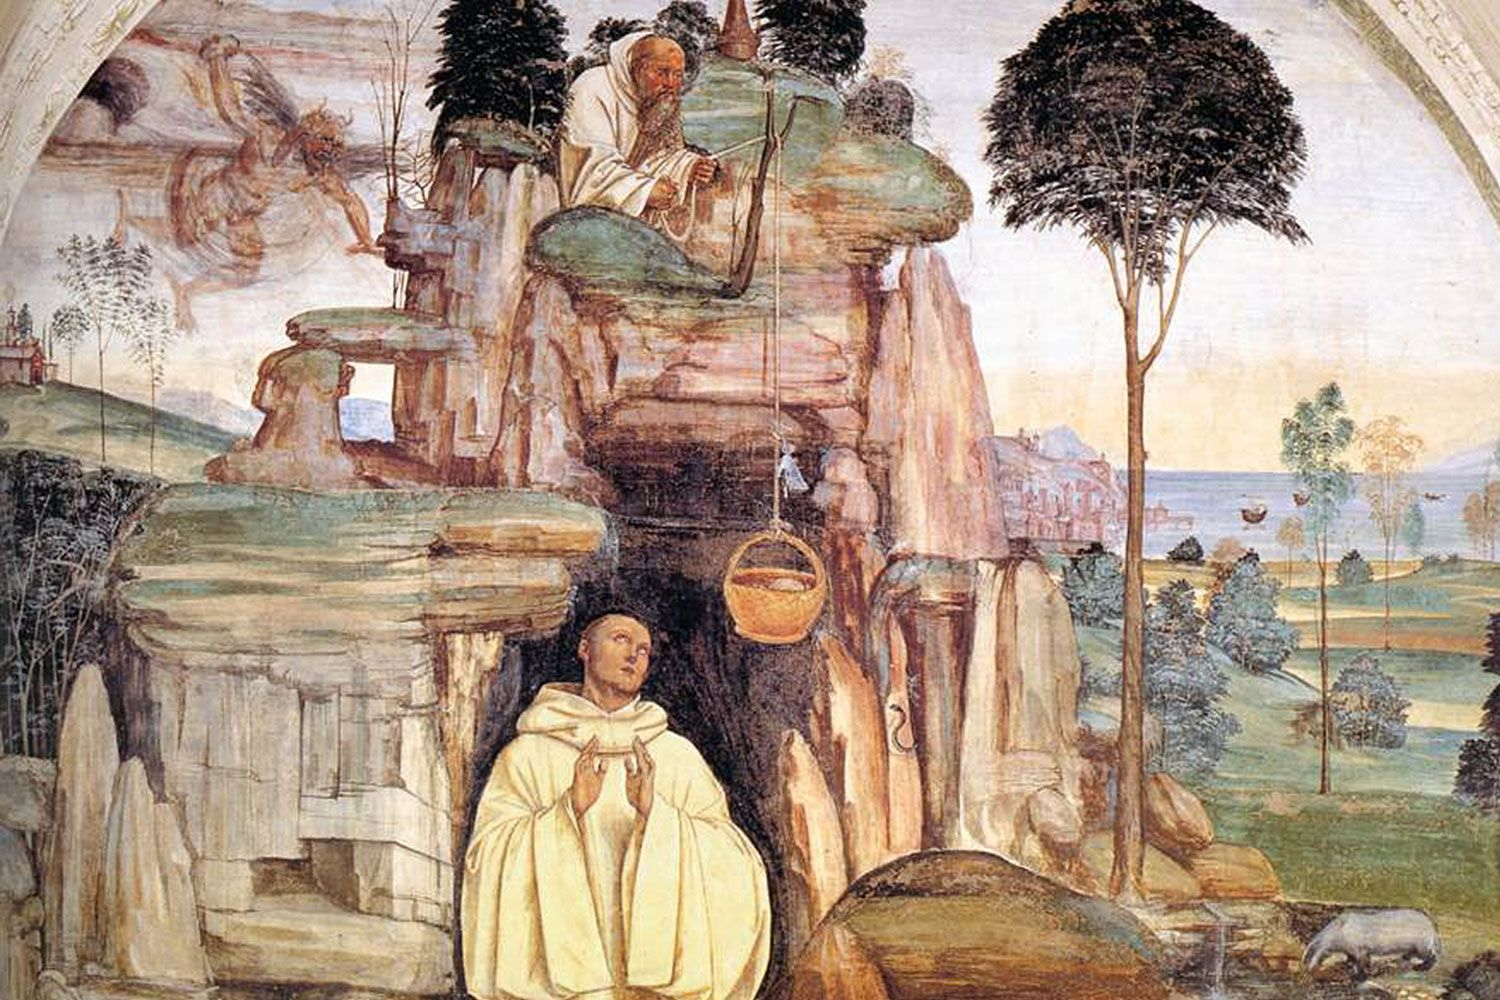 Sodoma's fresco cycle of the Life of St Benedict, Scene 5: The Devil Destroys the Little Bell (1505-08). Located in the Abbey of Monteoliveto Maggiore near Siena.